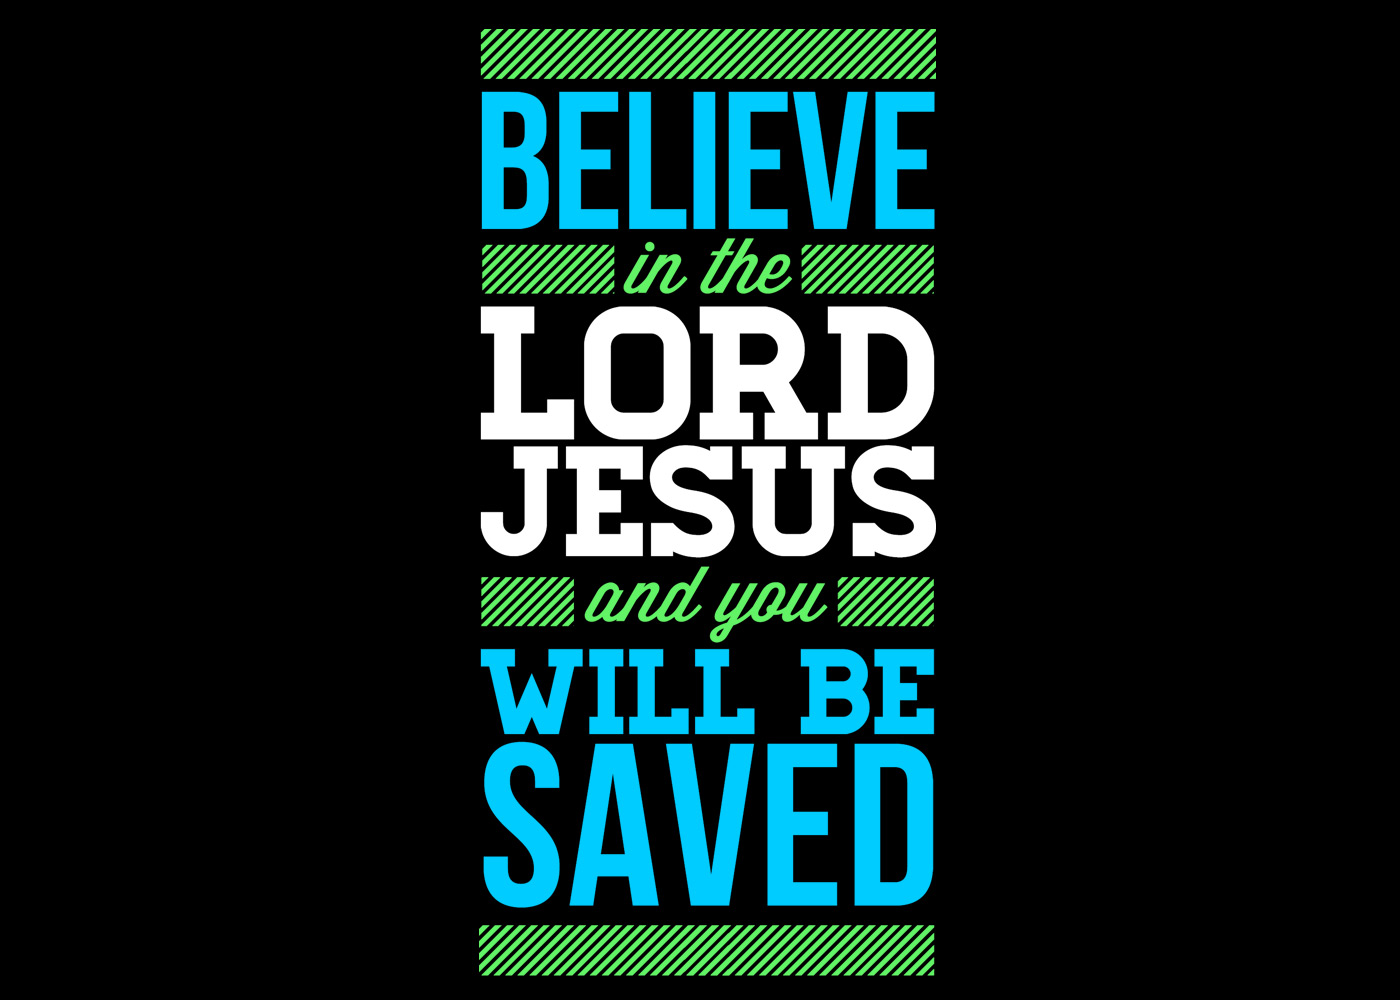 Believe in the Lord Jesus- Faith Christian Wallpaper